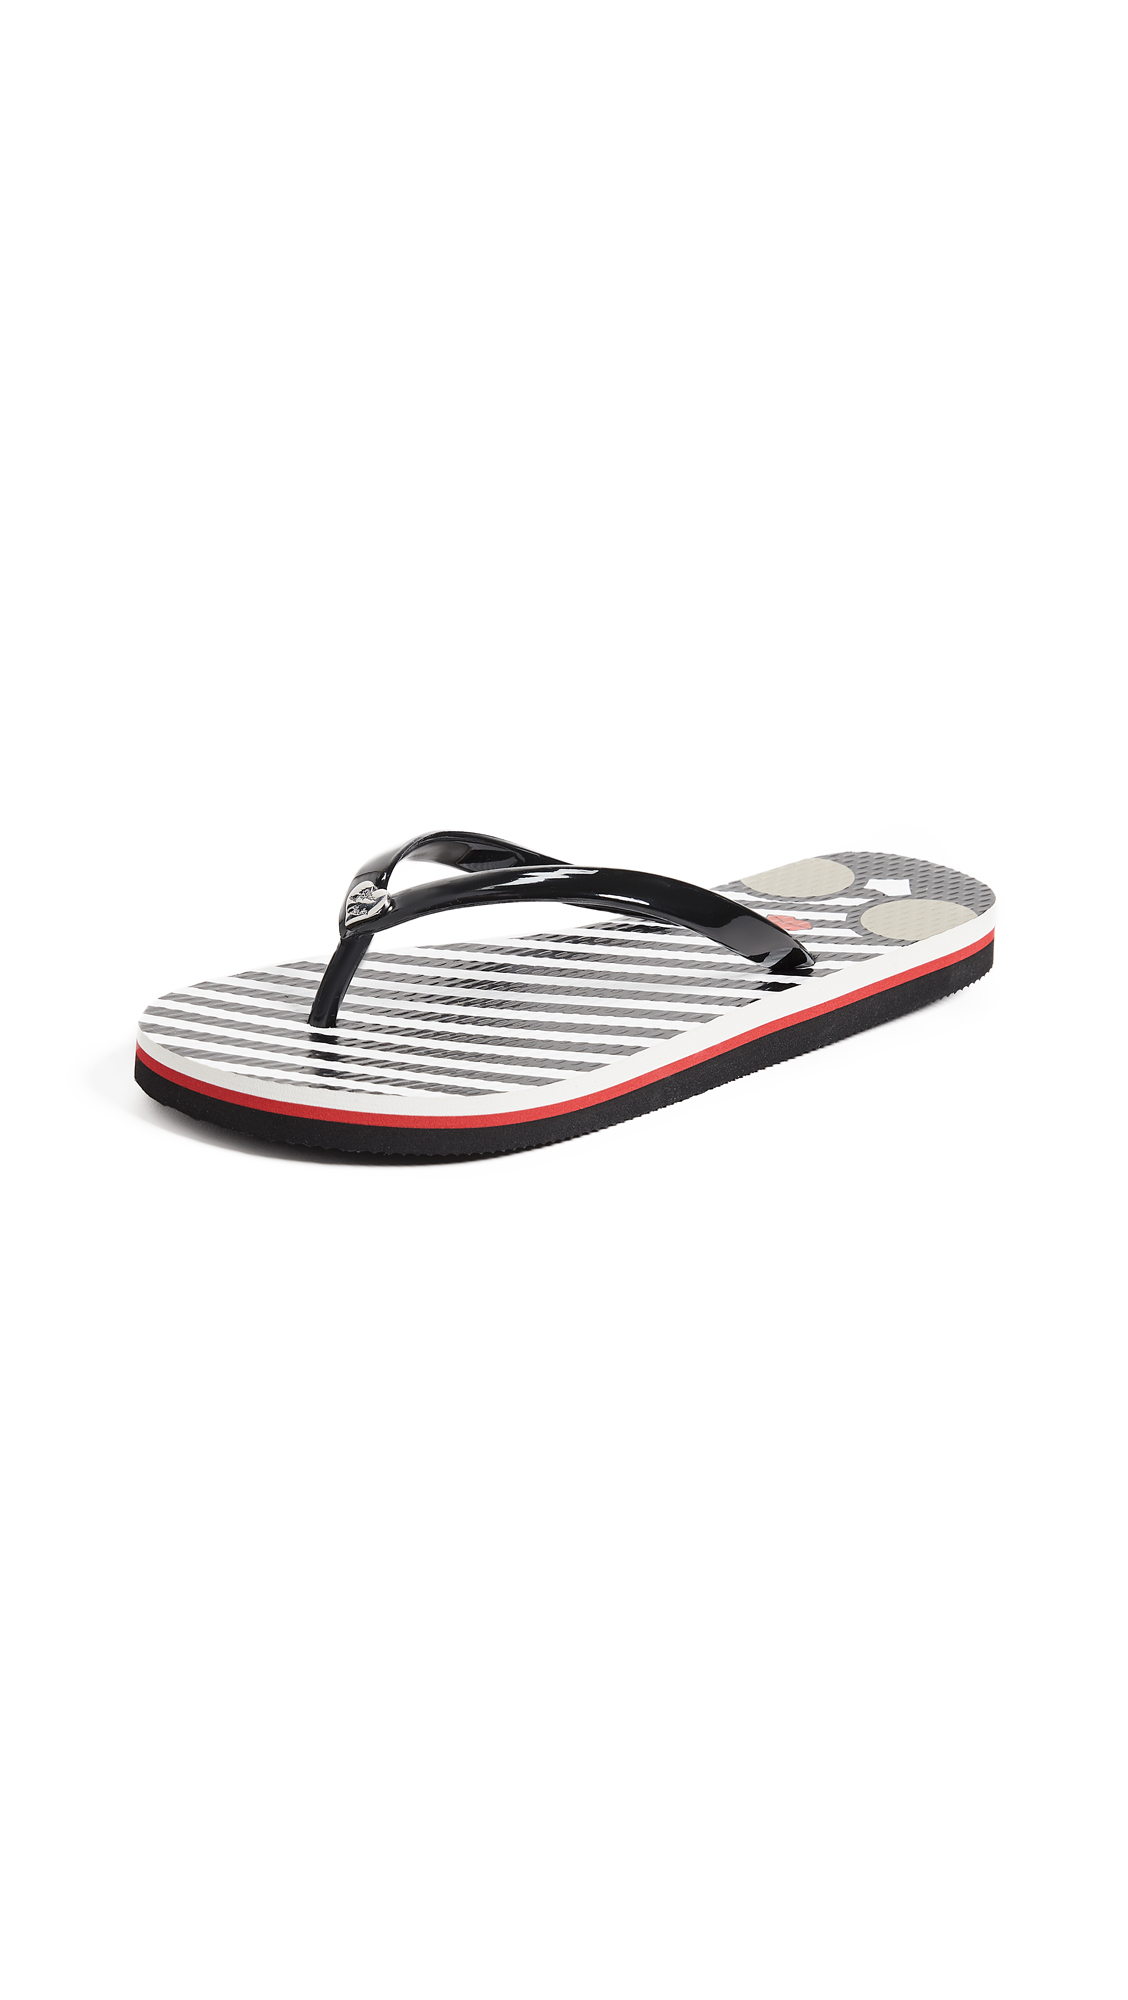 alice + olivia Eva Striped Flip Flops - Black